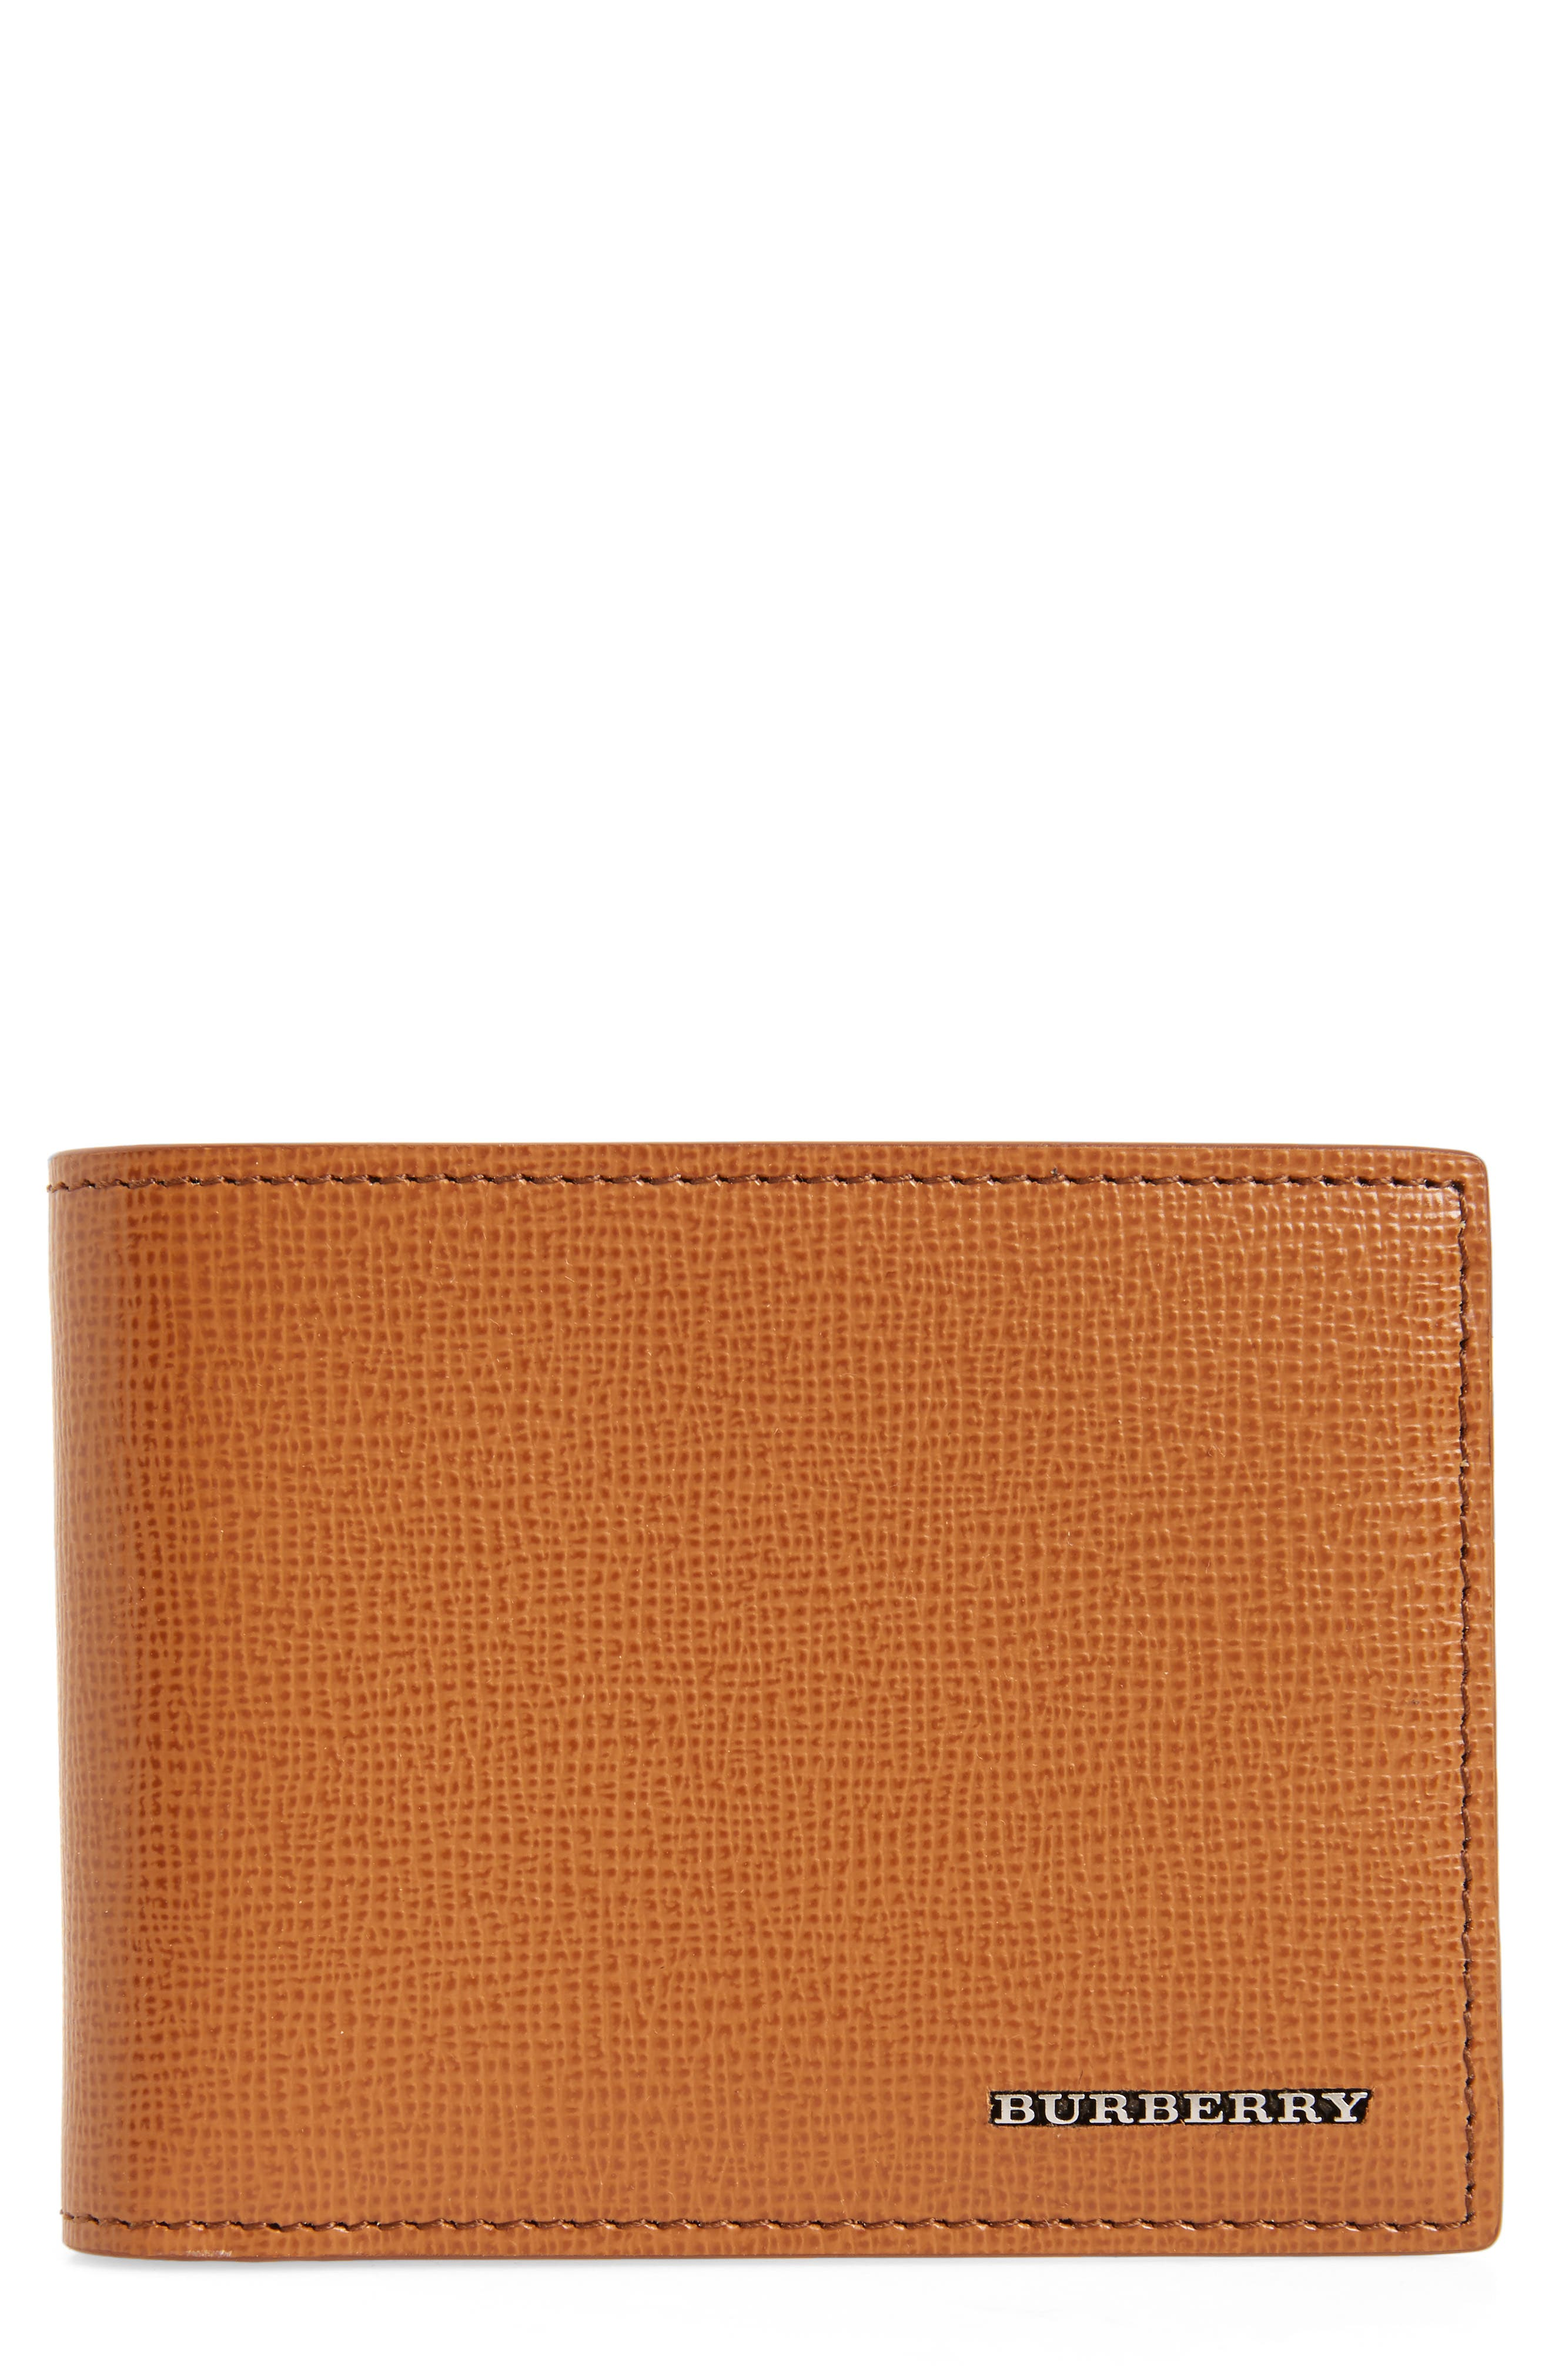 Main Image - Burberry Leather Bifold Wallet